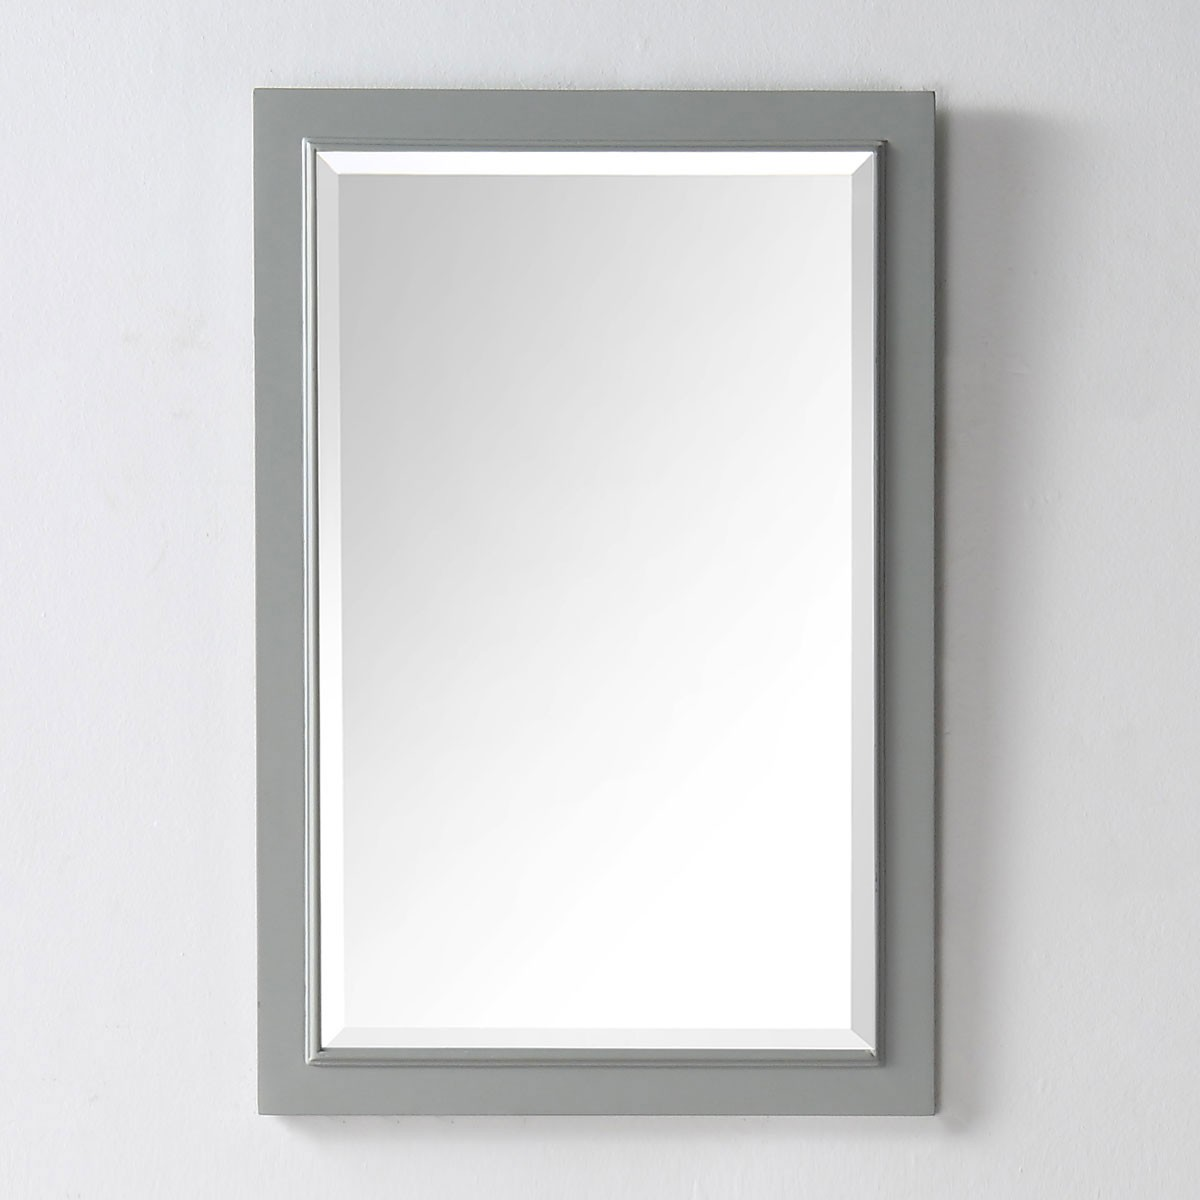 24 x 36 In Mirror with Cool Gray Frame (DK-6000-CGM)